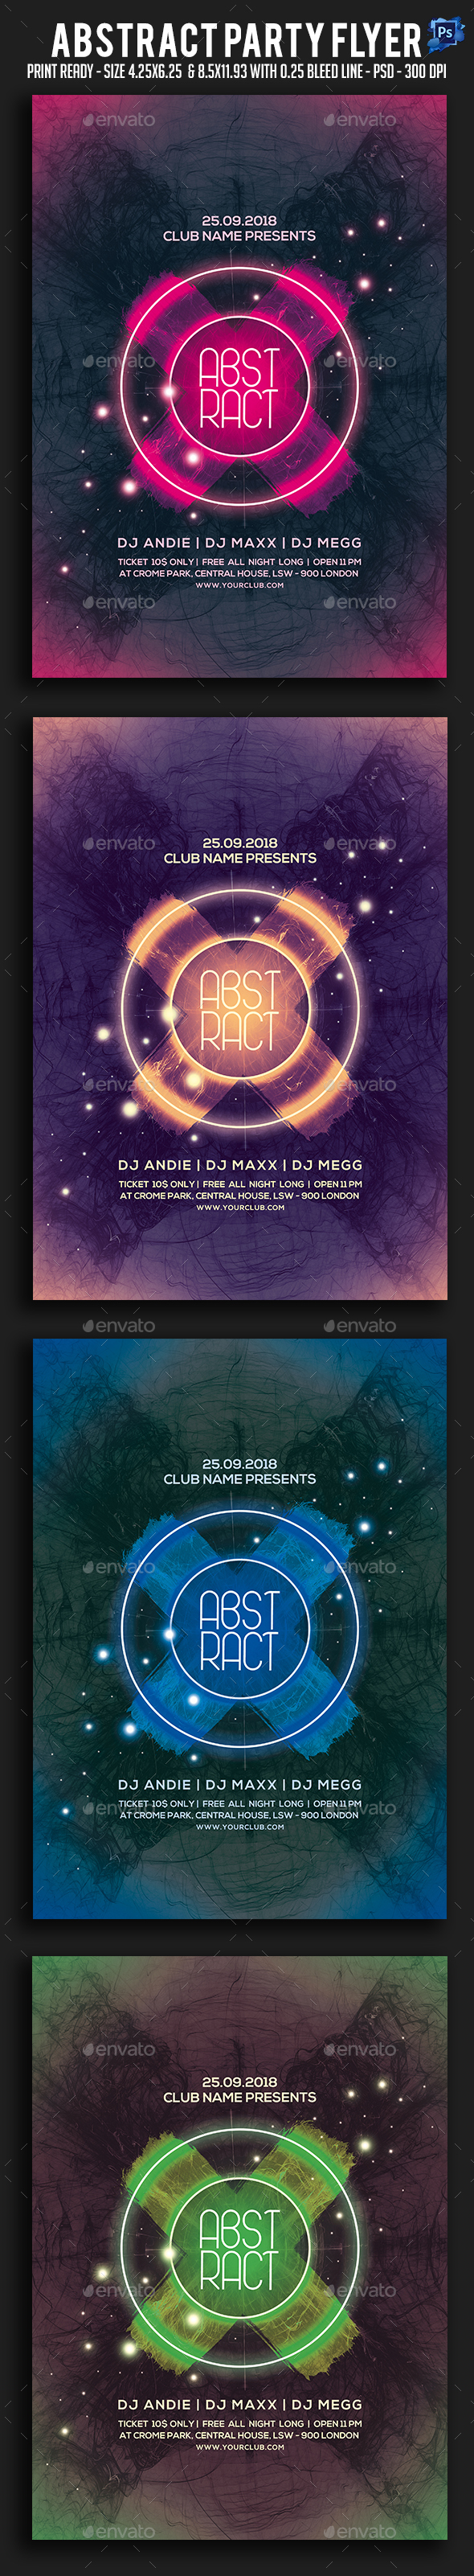 GraphicRiver Abstract Party Flyer 20818877